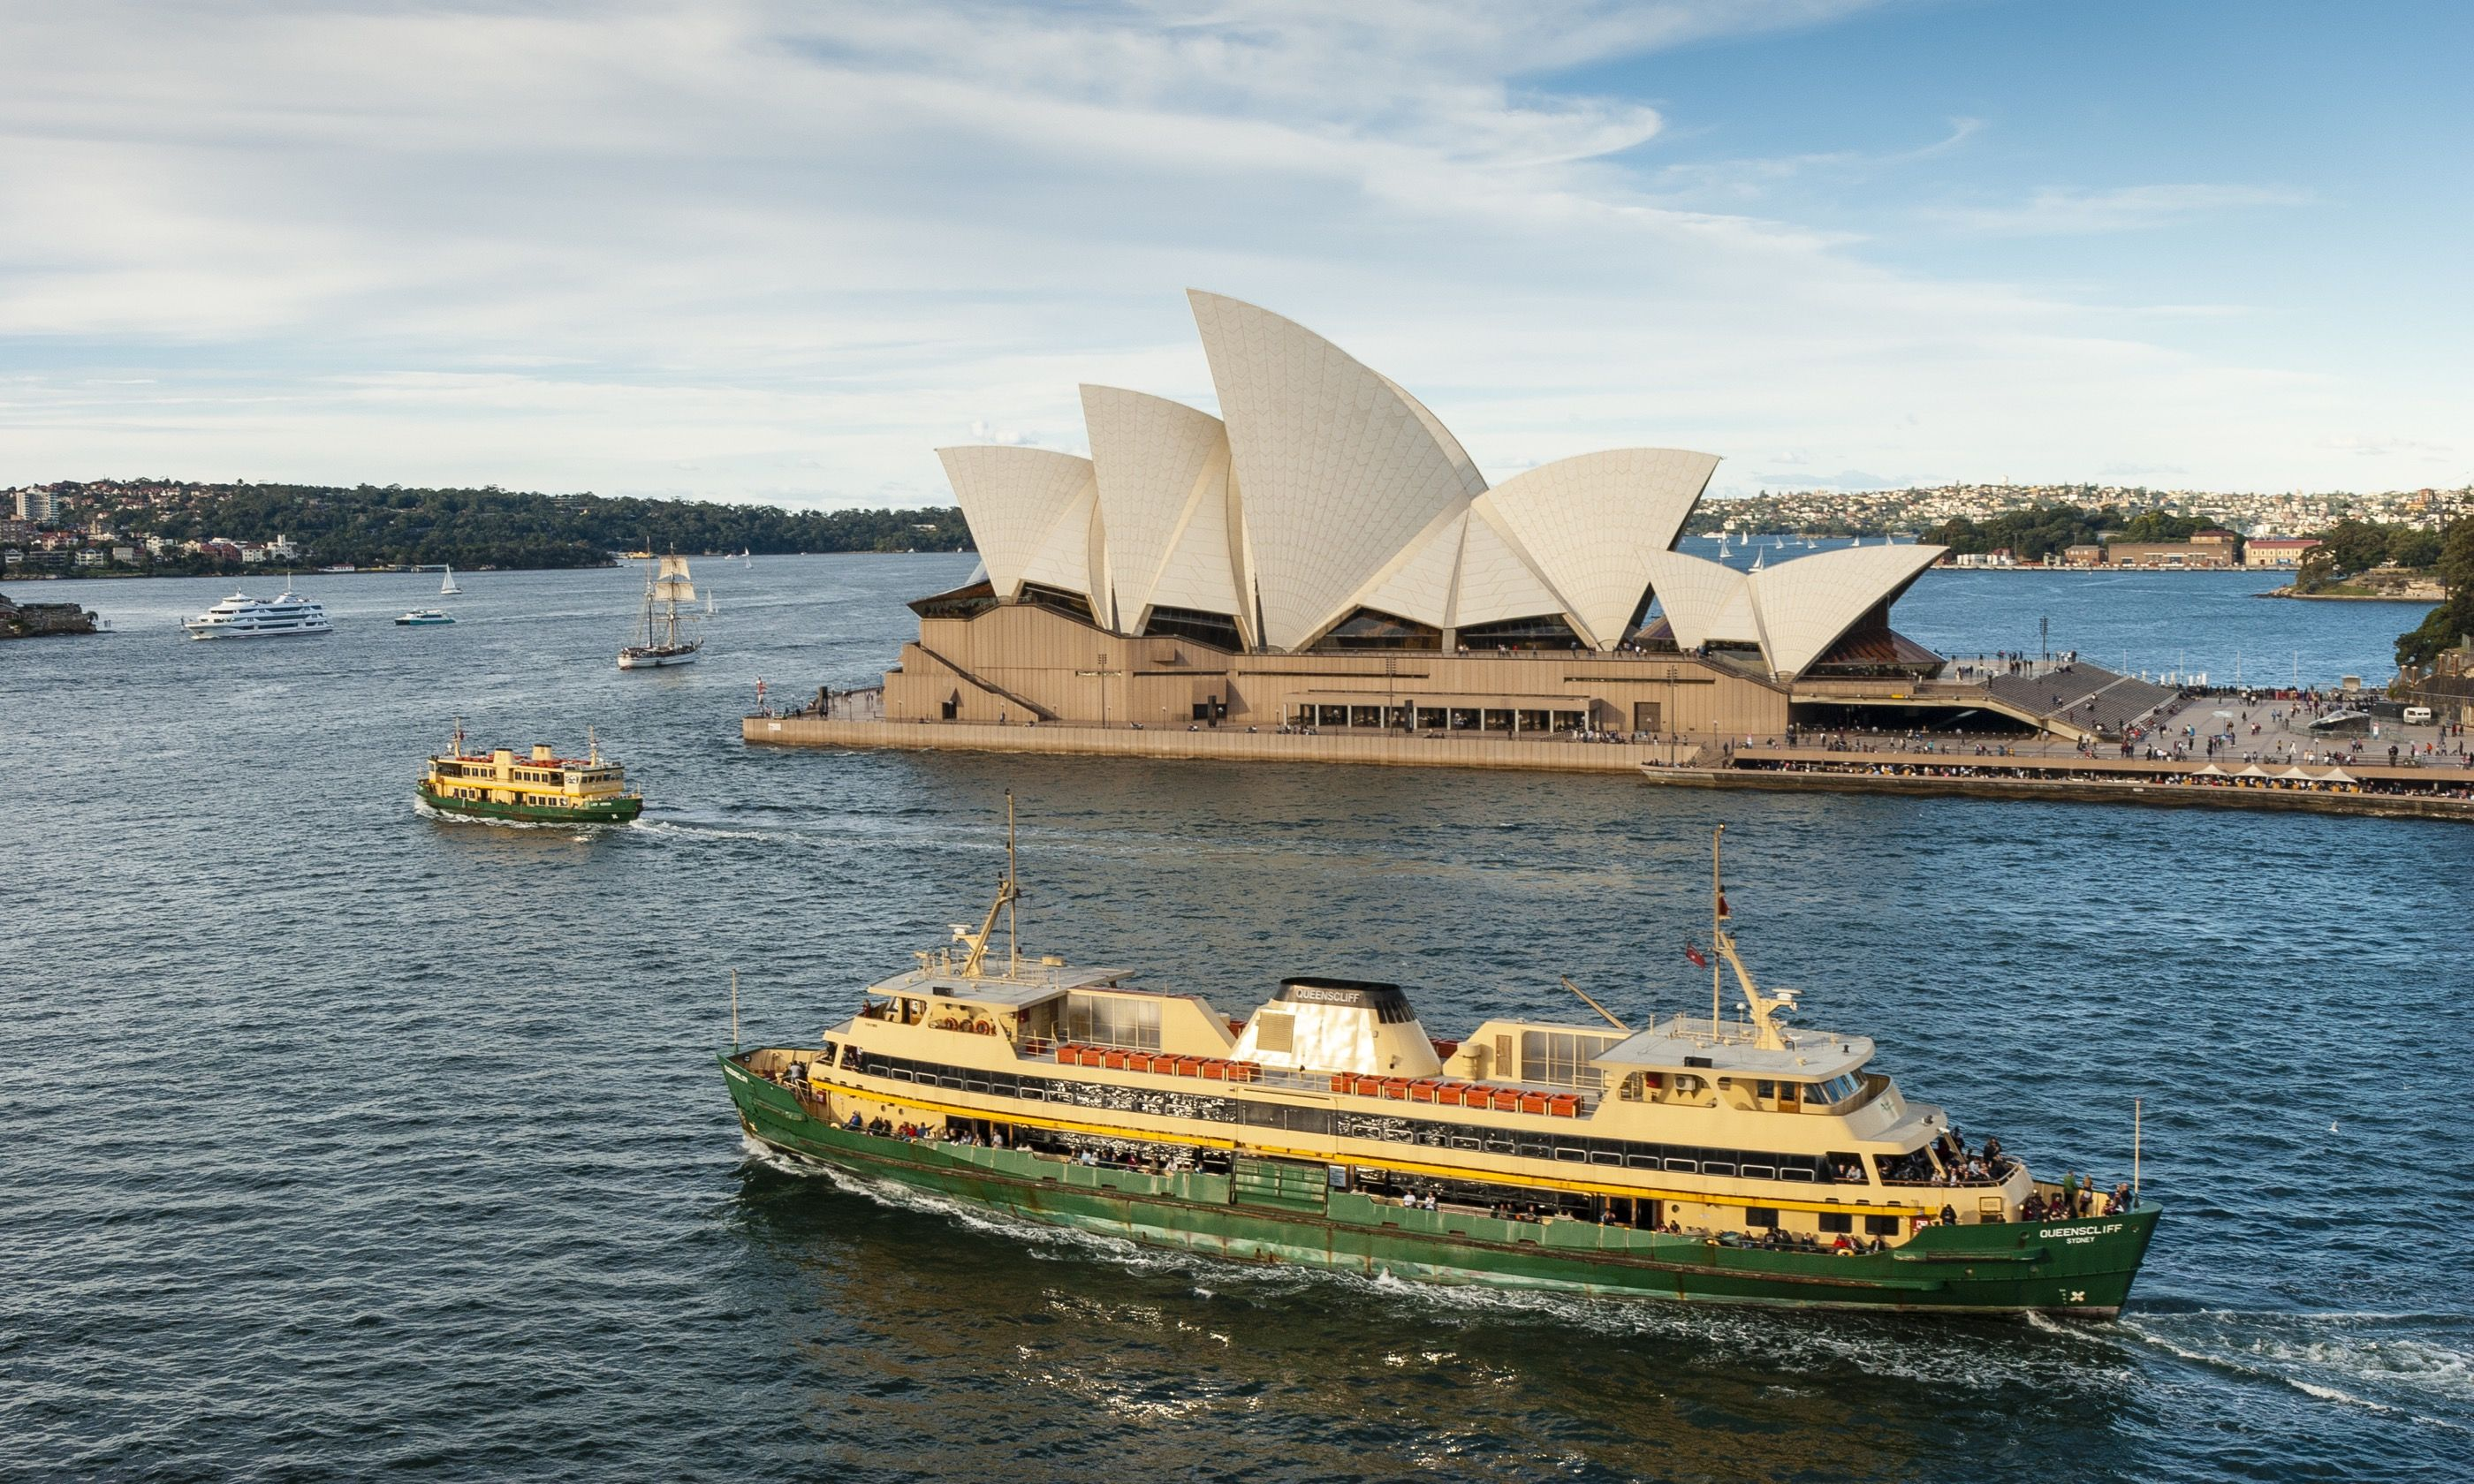 A boat on Sydney Harbour, Australia (Dreamstime)